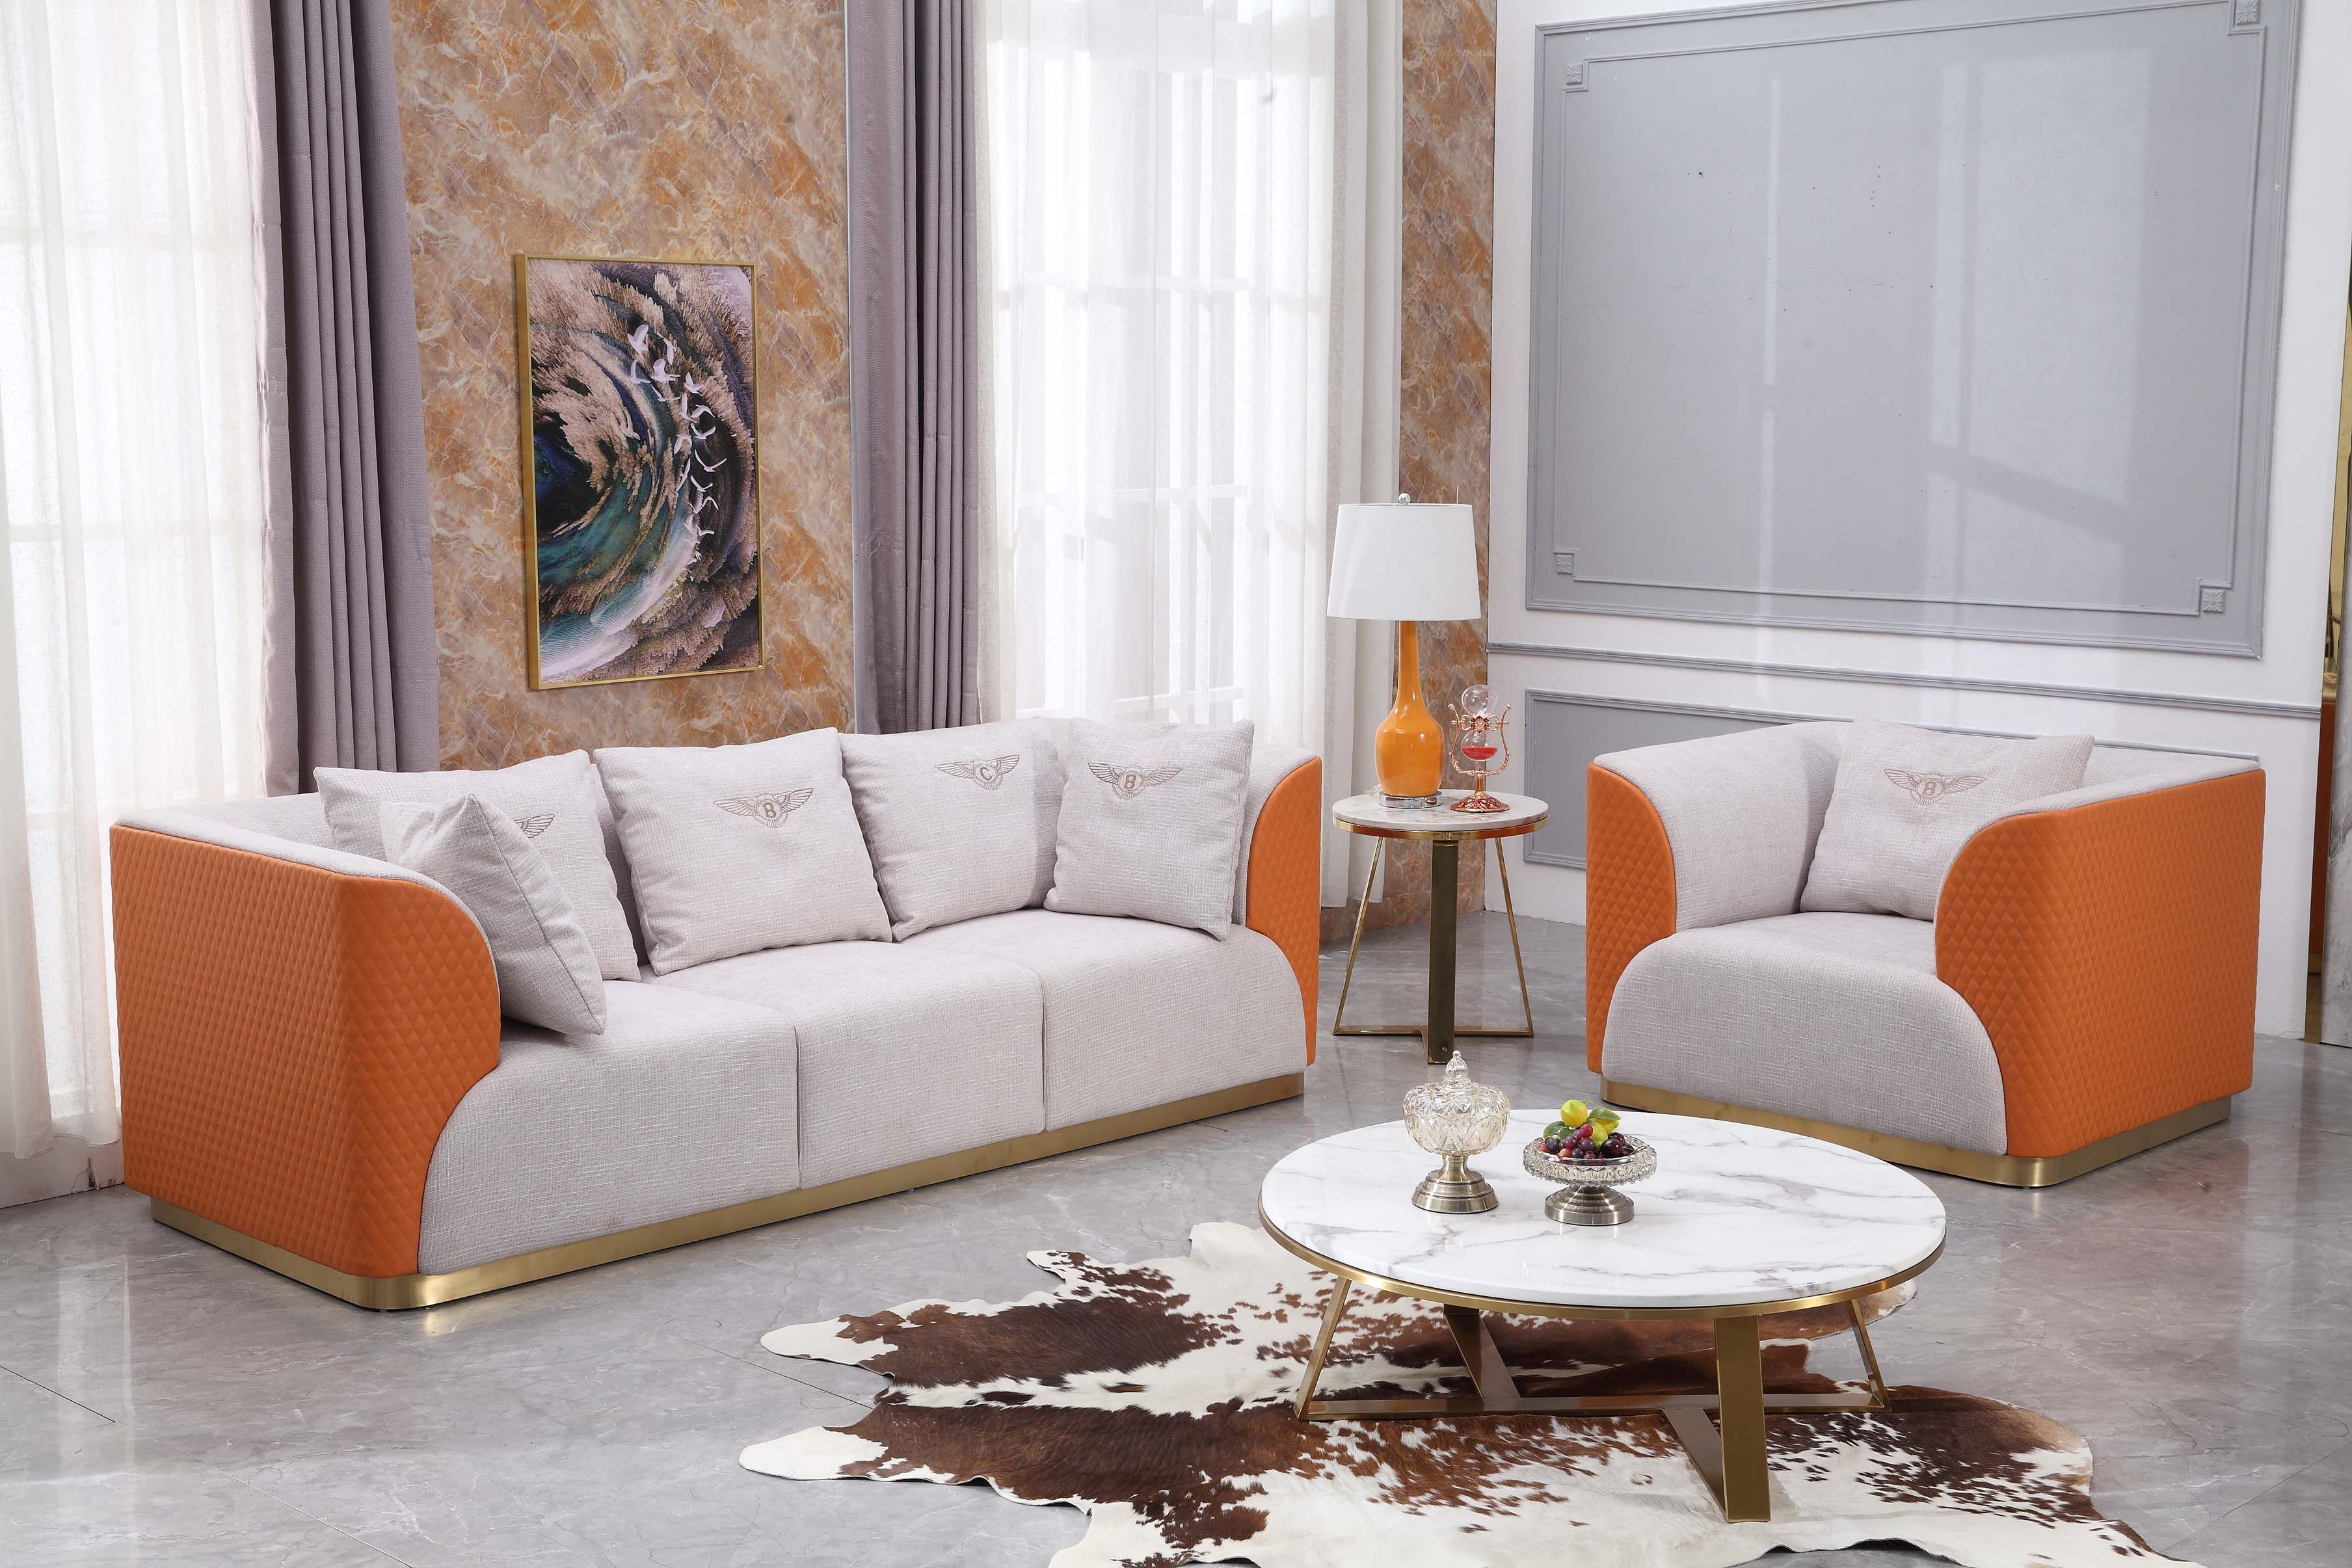 A Jaw Dropping Choice For Your Living Room Exclusively Available At Idus Furniture Store New Delhi Sofa Design Italian Sofa Set Living Room Sofa Set